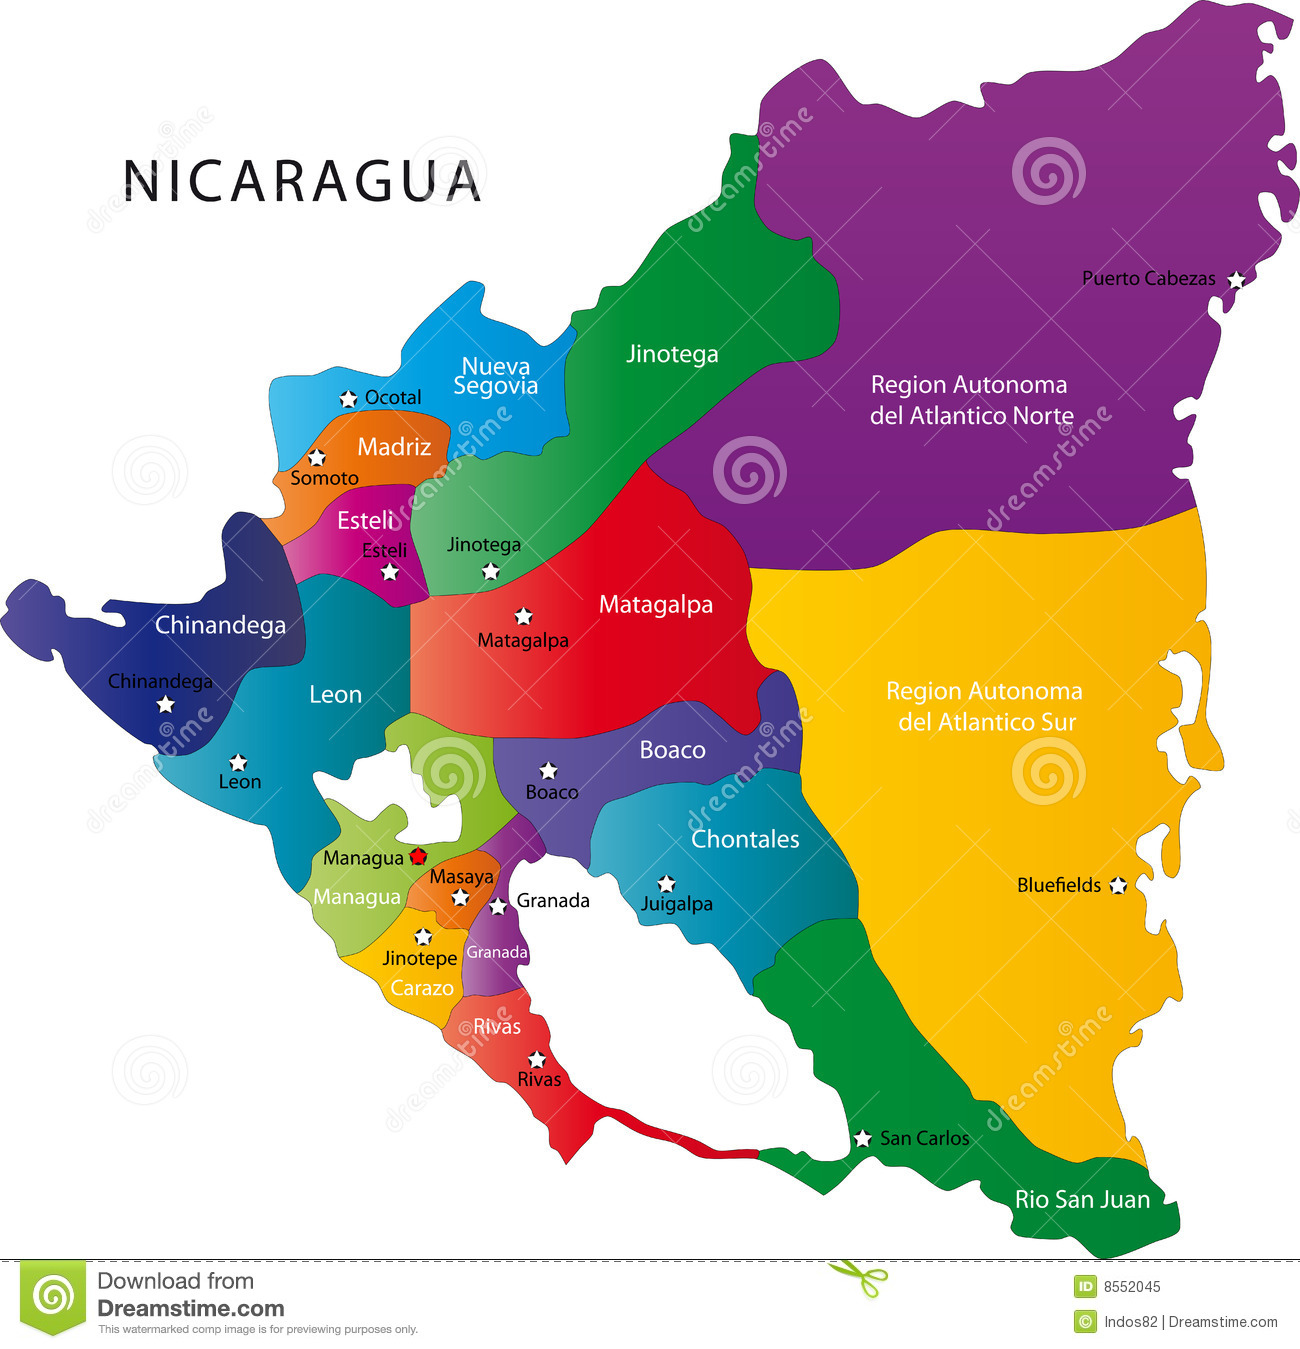 Nicaragua political map Maps and Travel Guides Pinterest